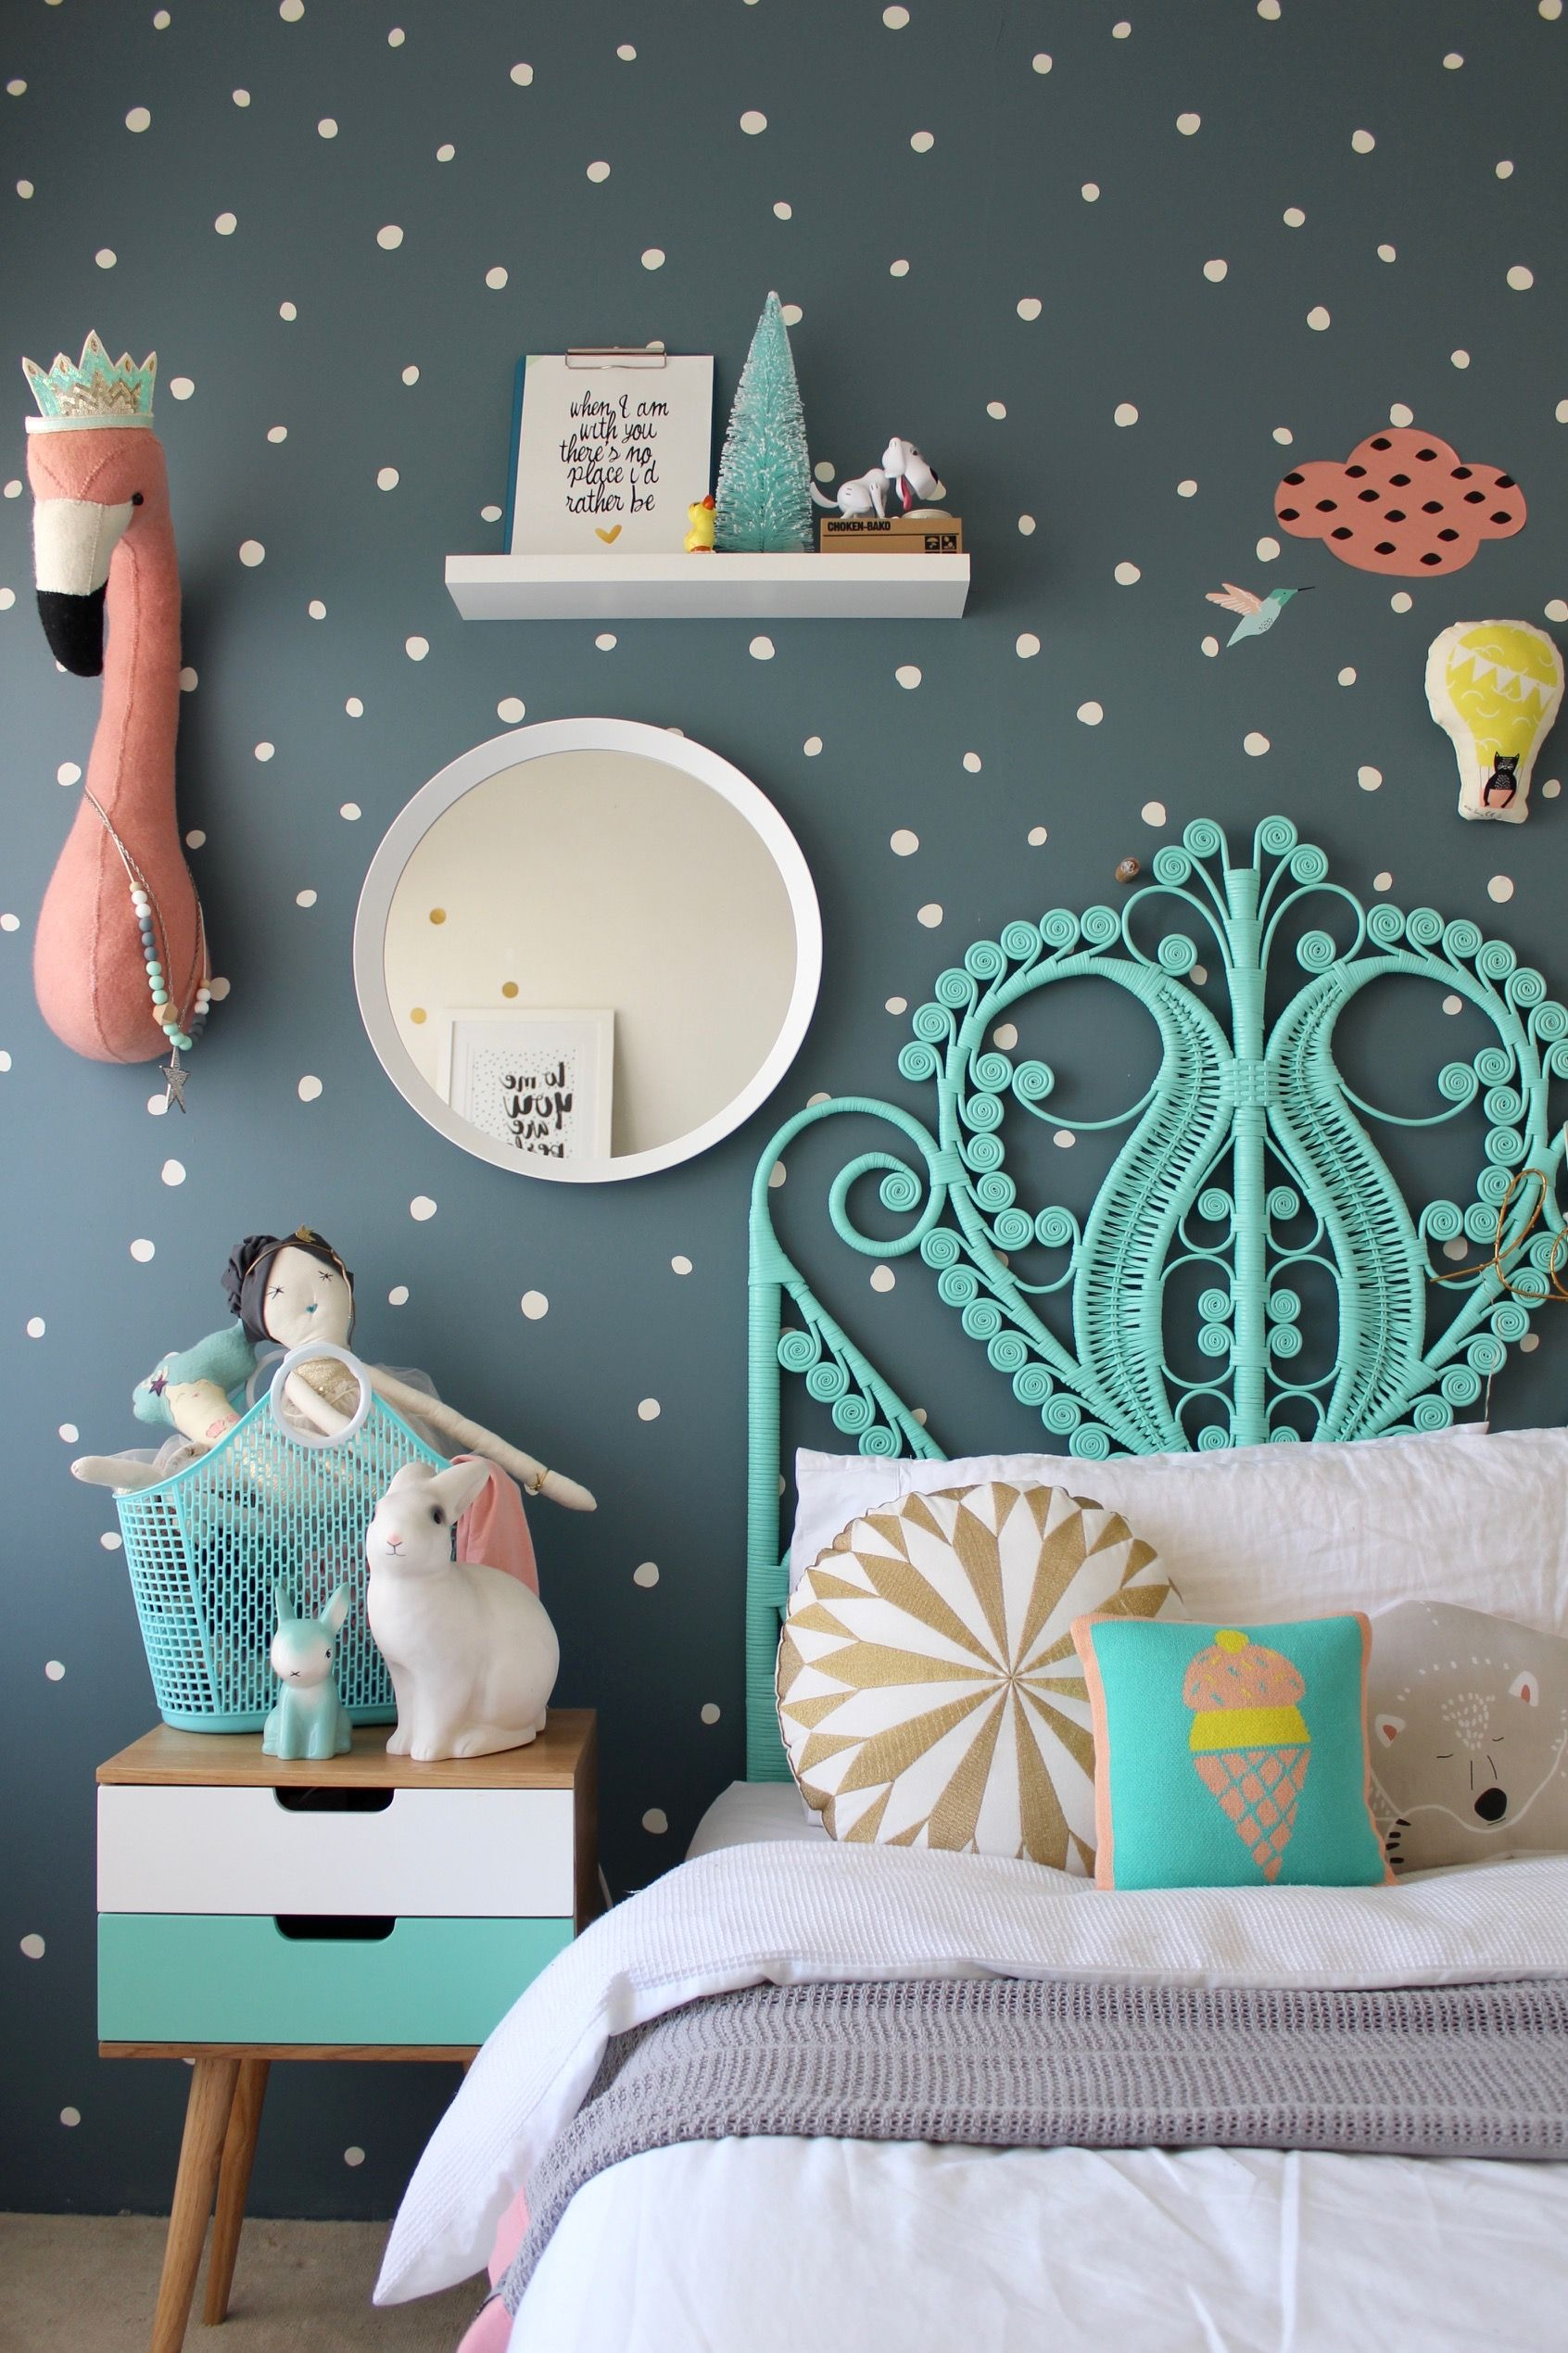 Amelia S Room Toddler Bedroom: More Fun Childrens Bedroom Ideas For Girls On The Blog